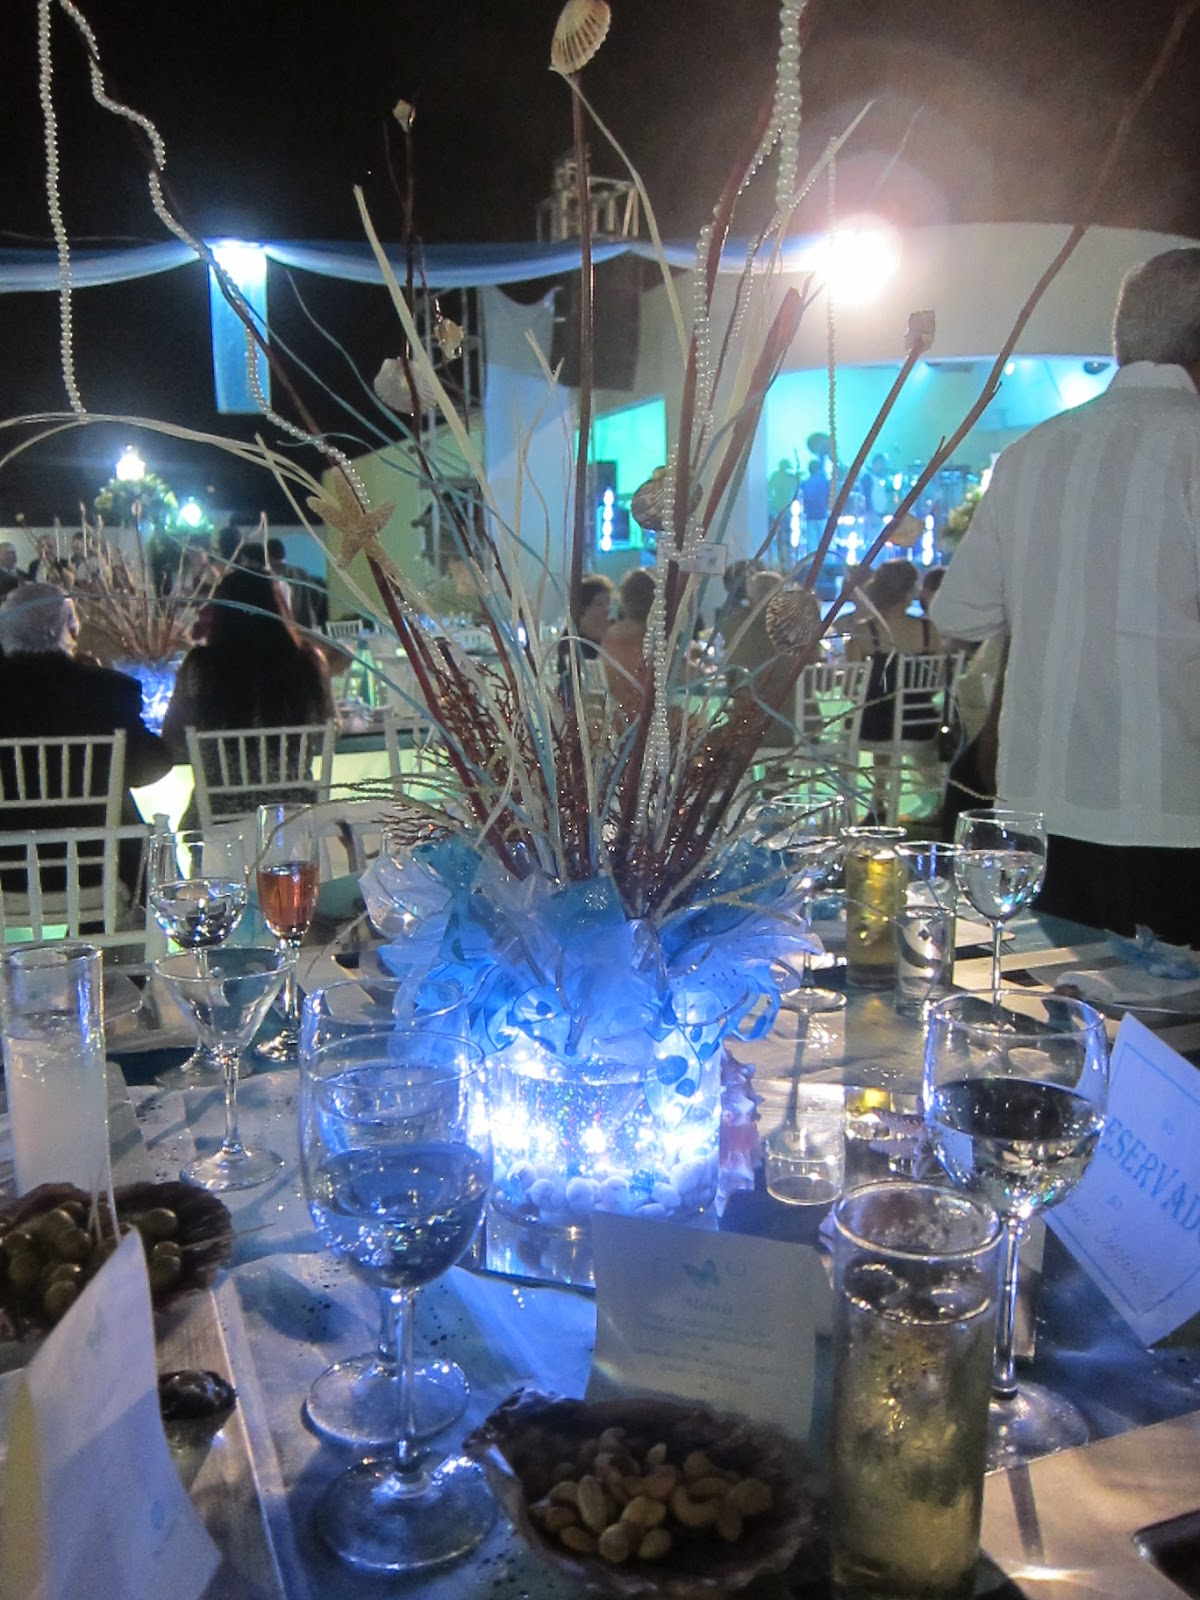 Music themed wedding centerpiece or party table lighted - Quinceanera Table Centerpieces Ideas Car Interior Design